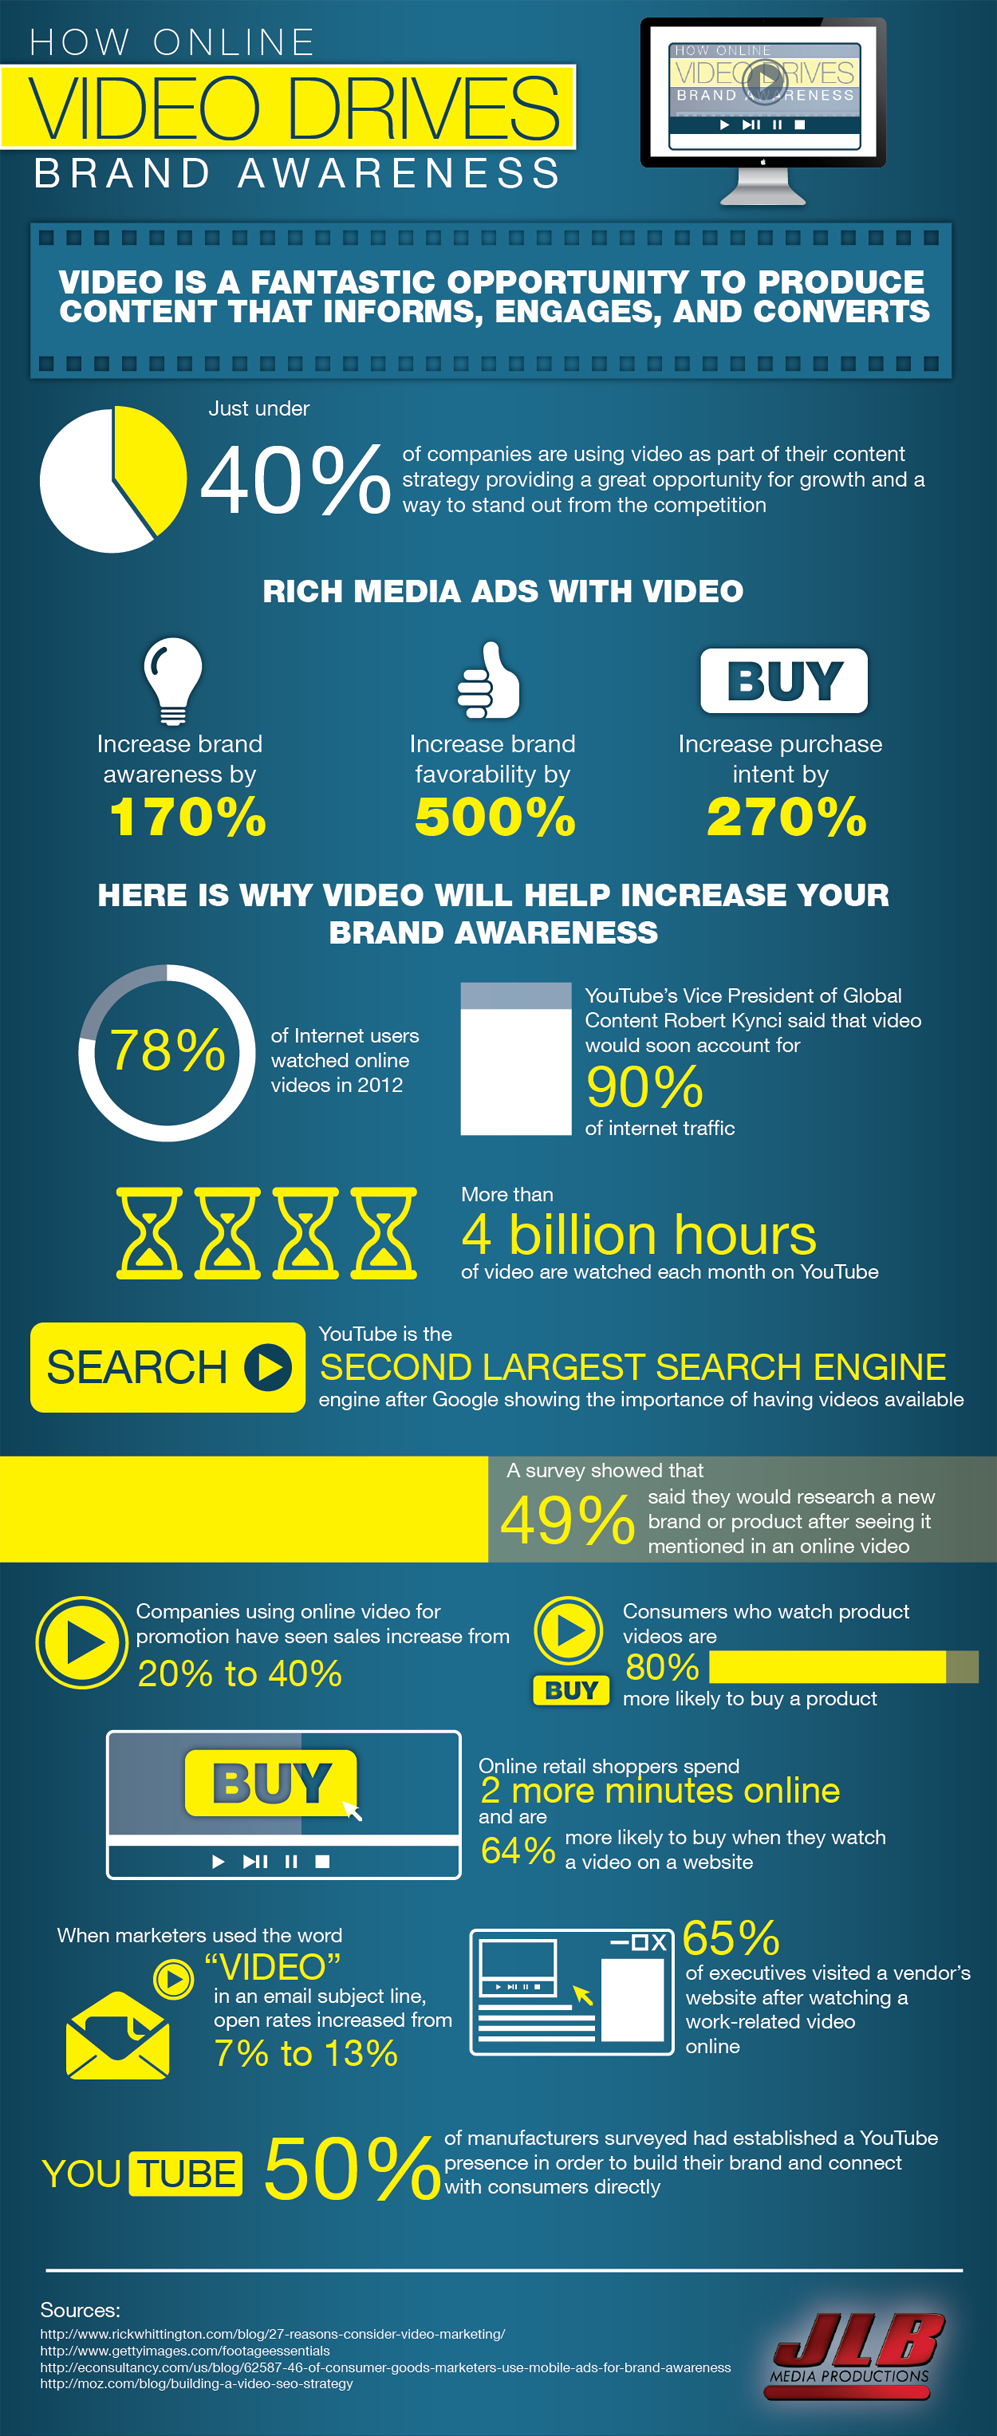 How Online Video Drives Brand Awareness